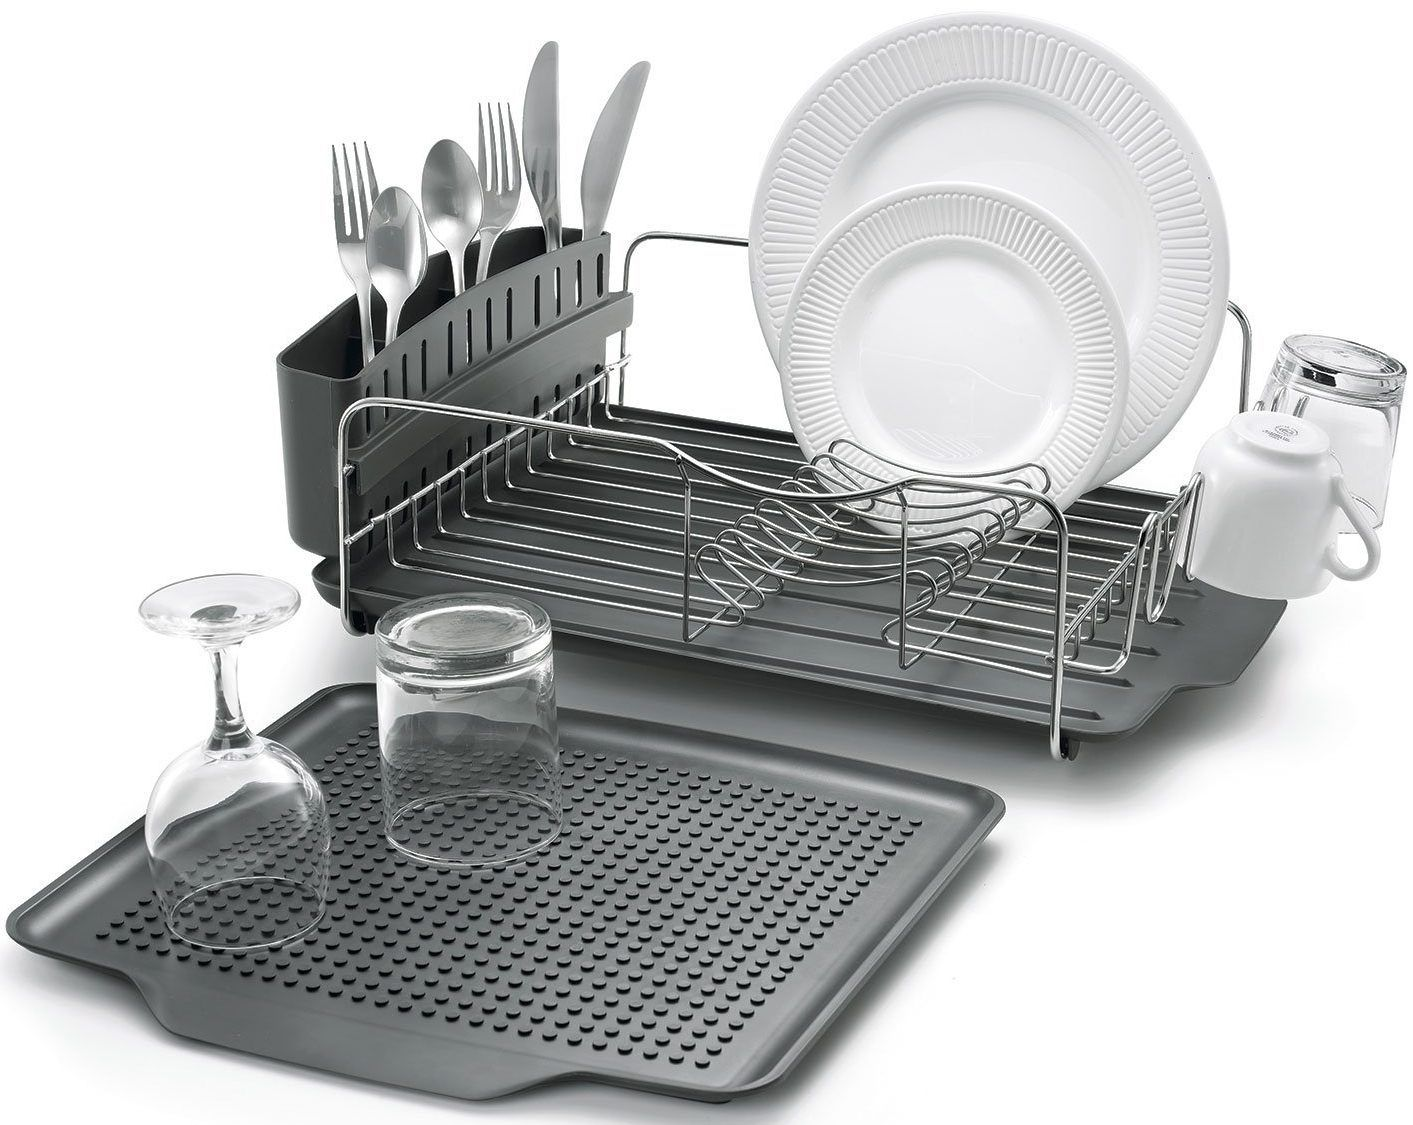 Top 10 Best Dish Drainers And Racks In 2020 Reviews With Images Dish Rack Drying Dish Racks Dish Drainers